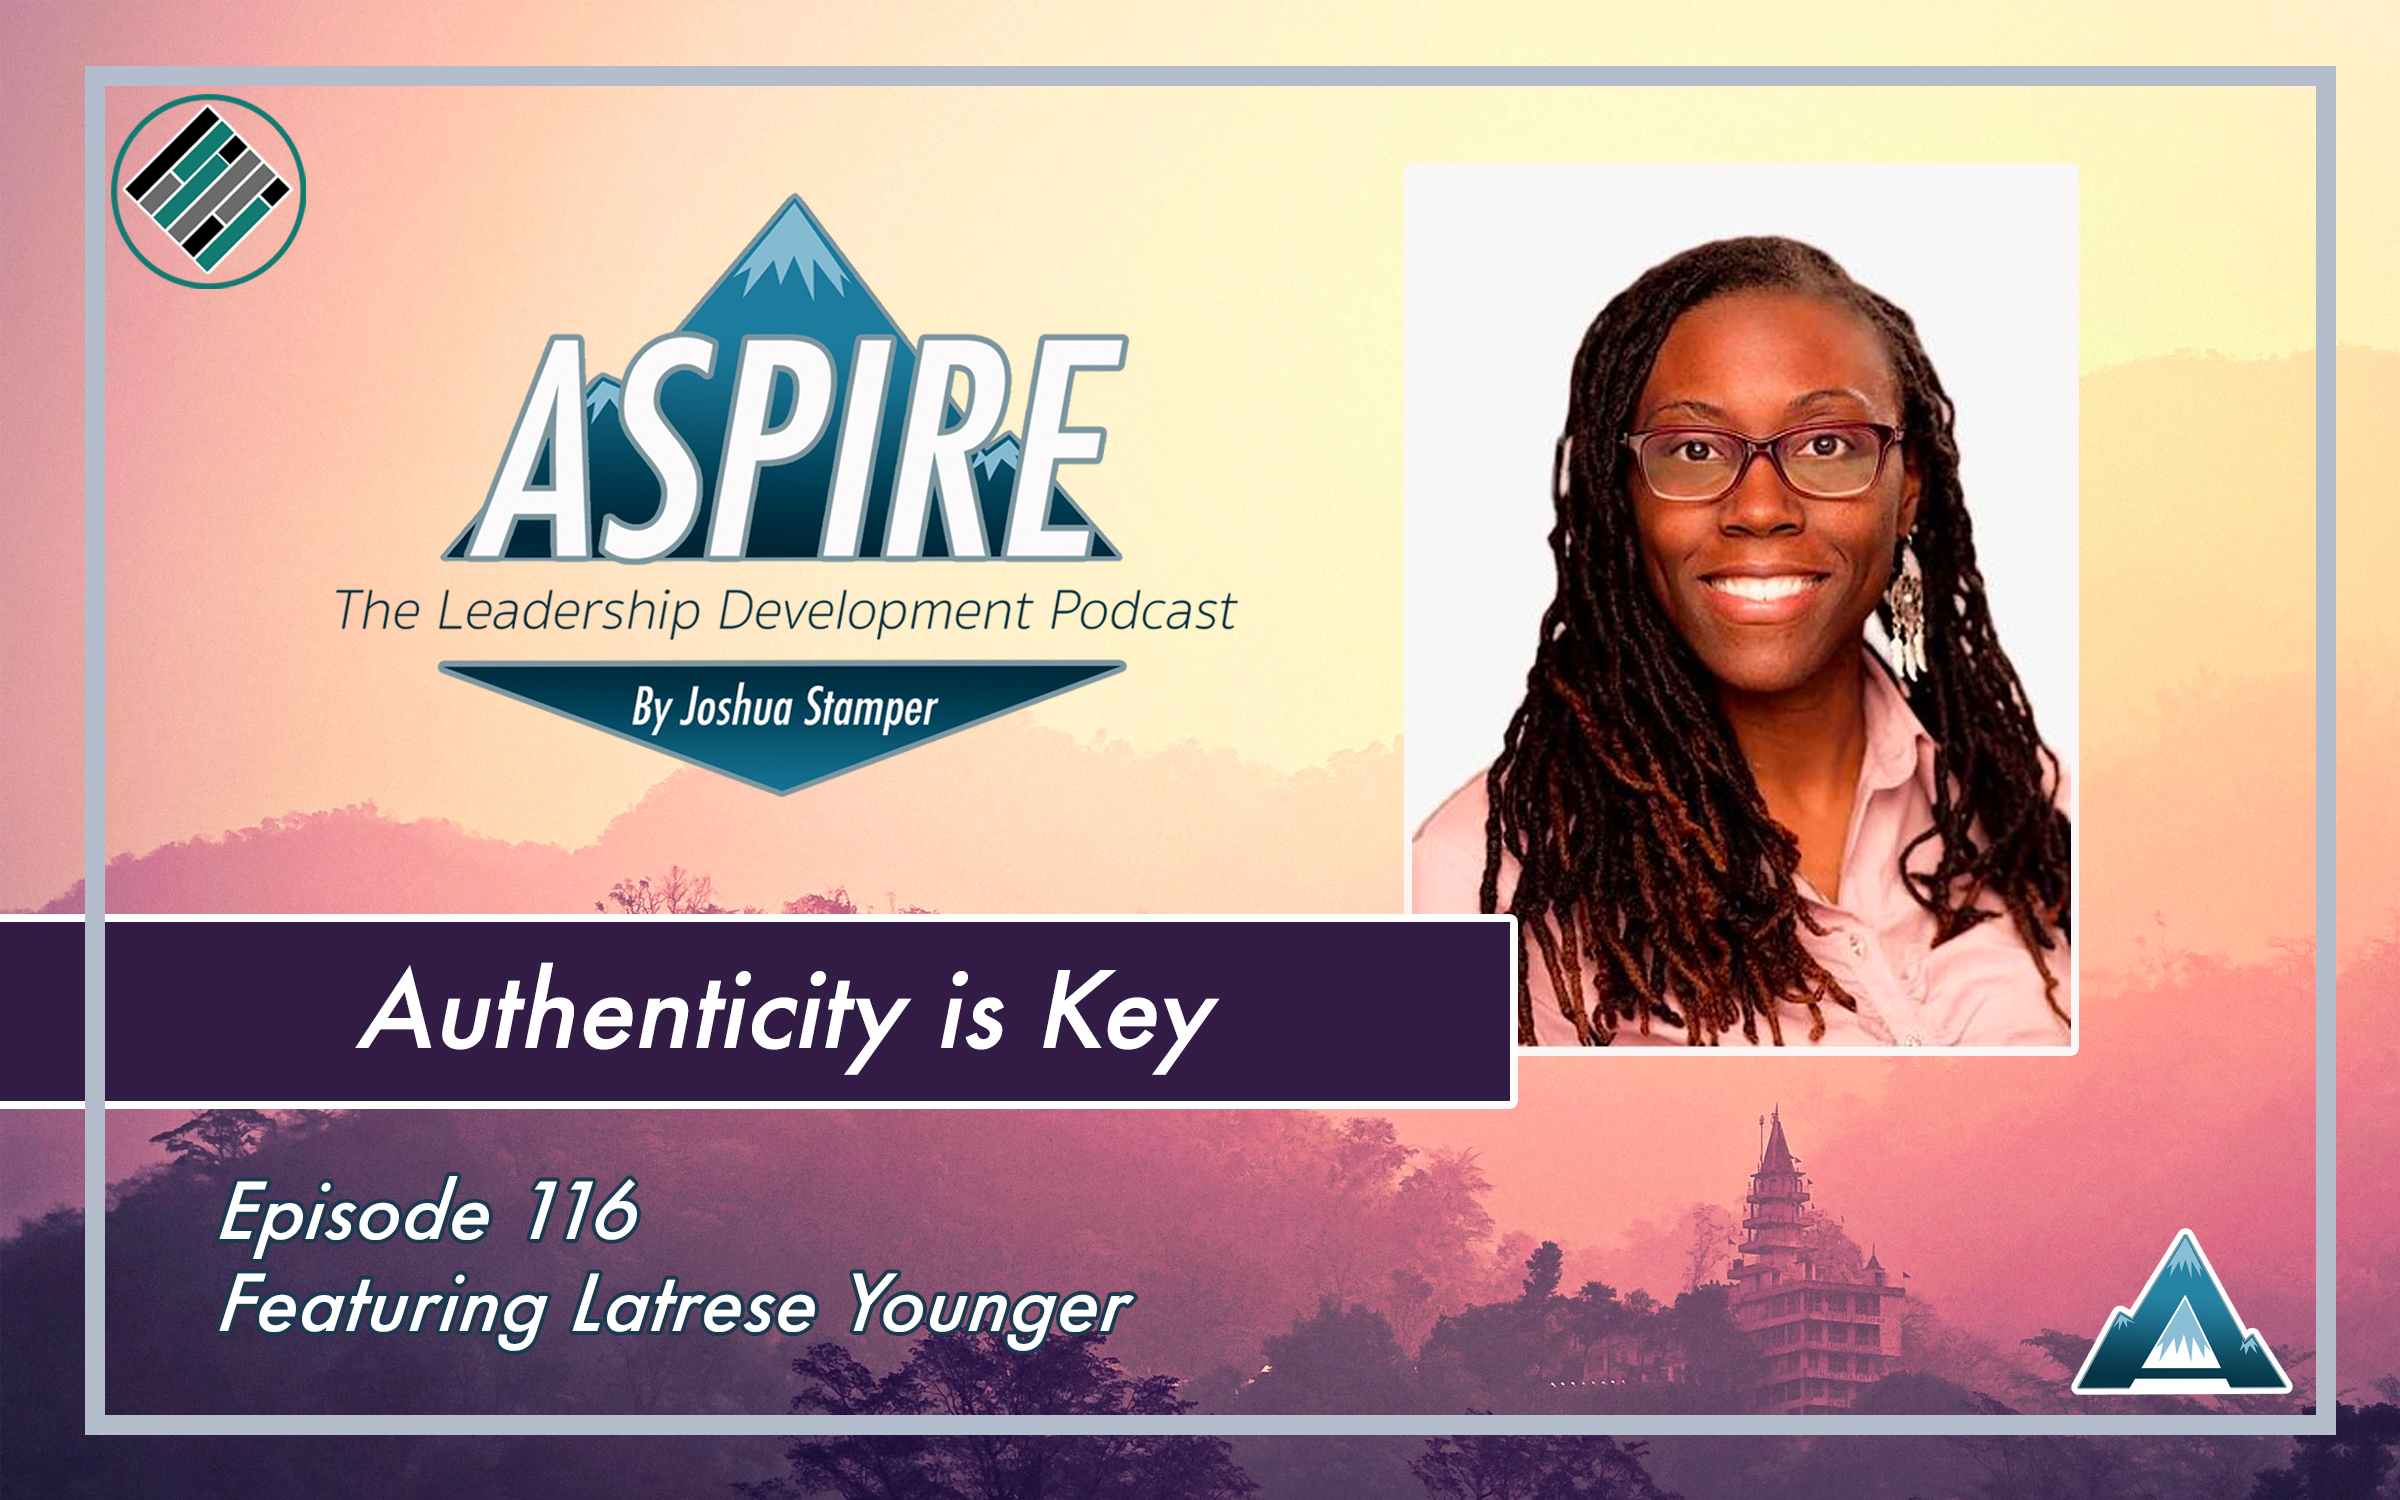 Latrese Younger, Joshua Stamper, Aspire: The Leadership Development Podcast